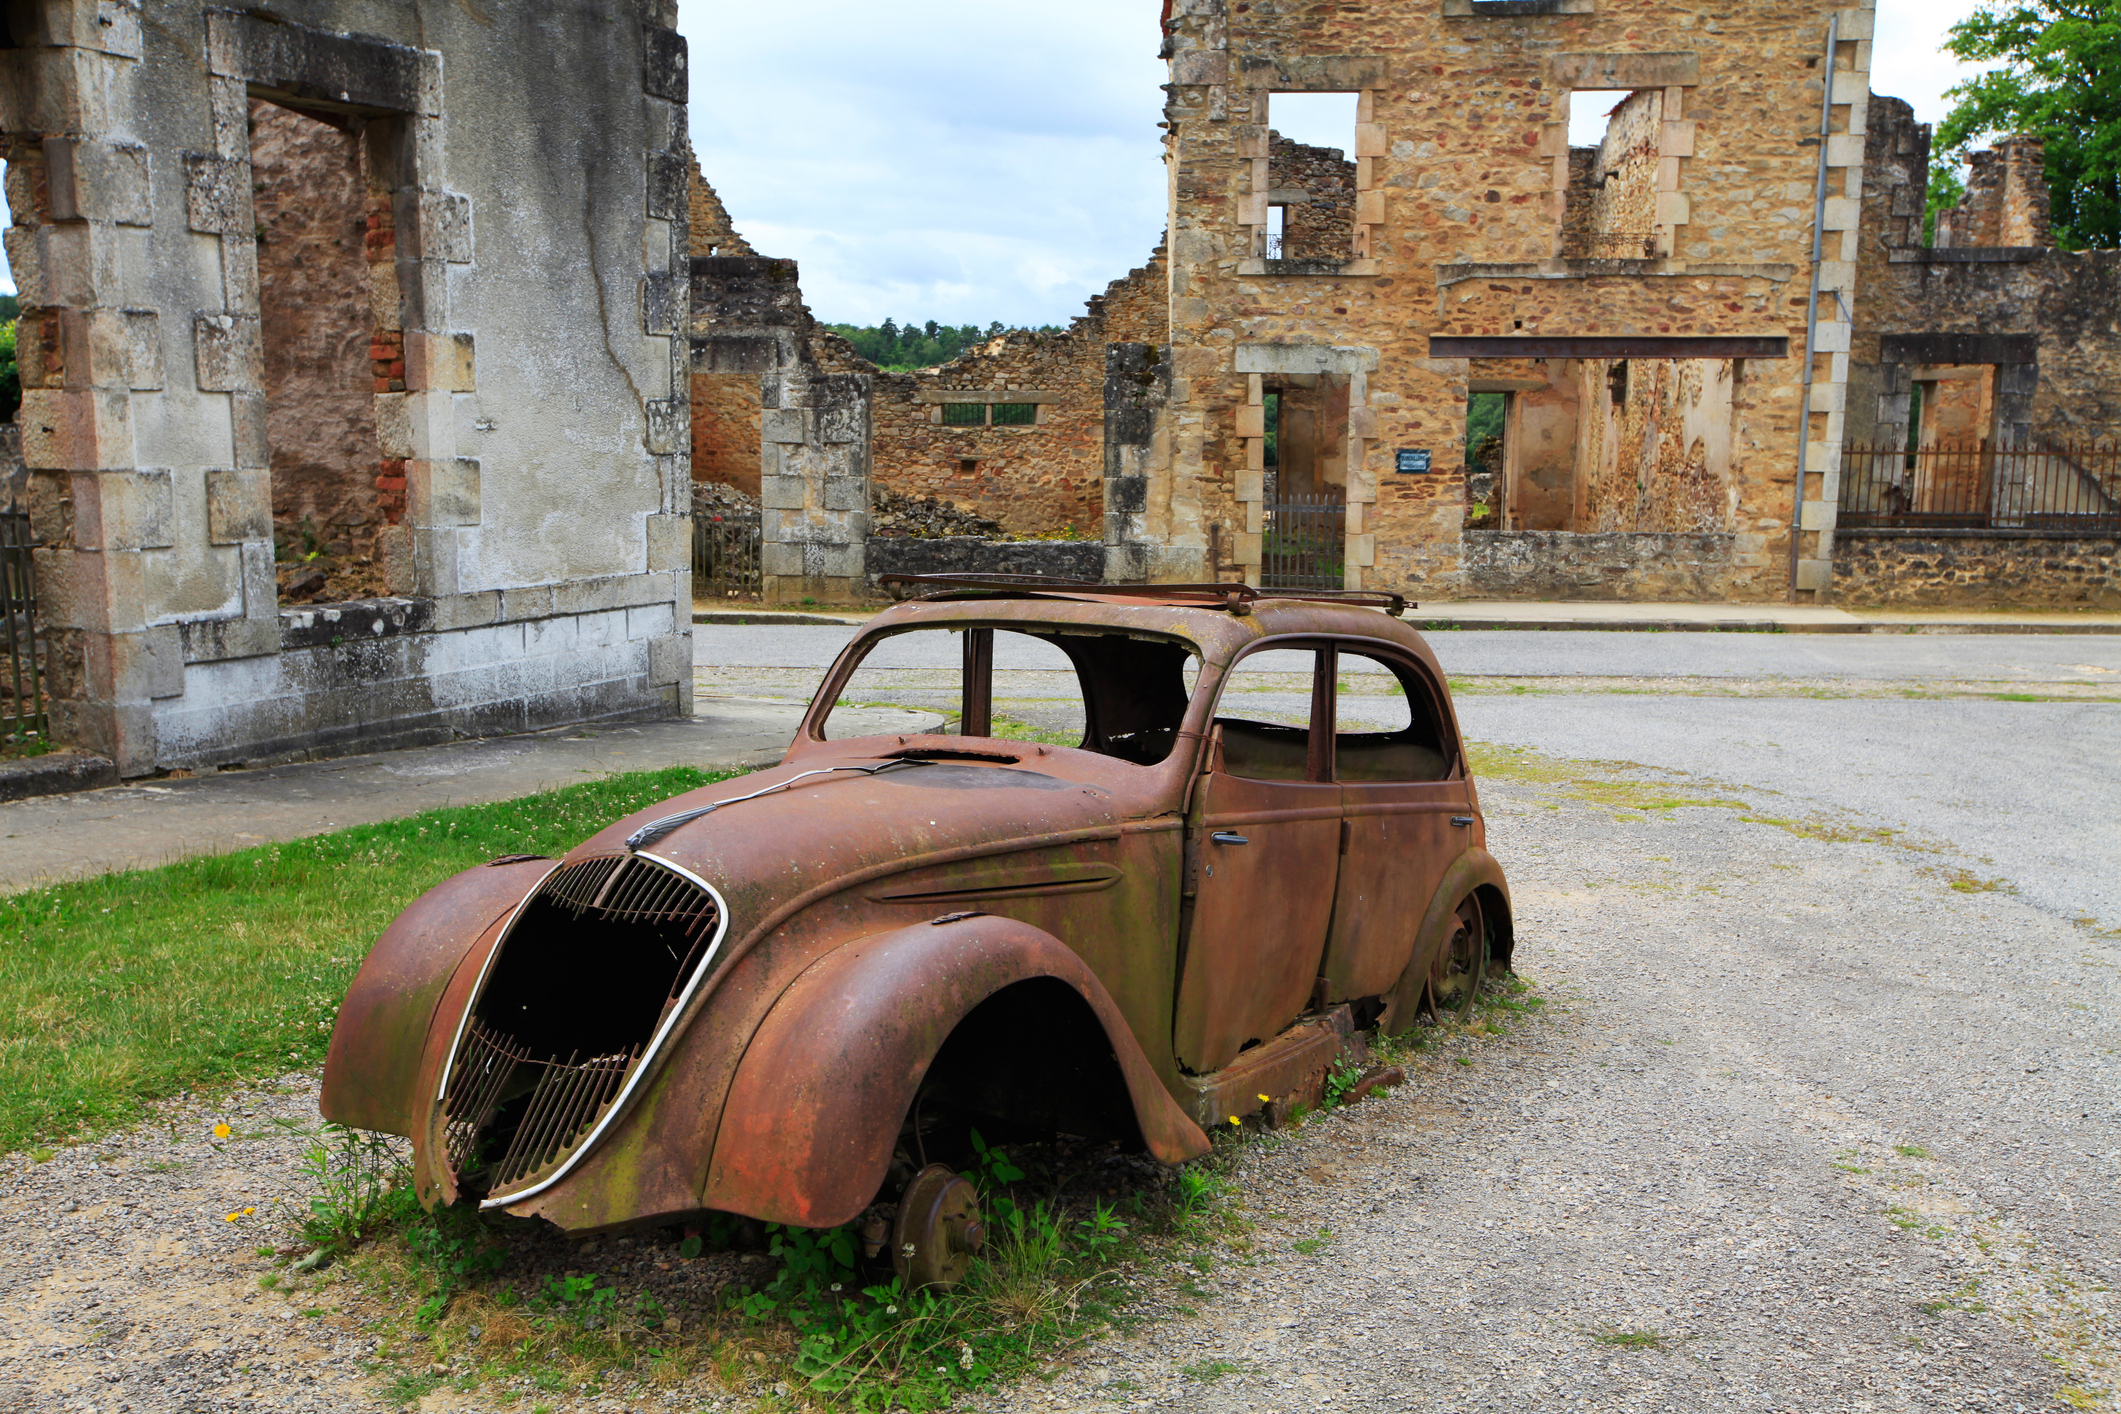 """Oradour-sur-Glane is a commune in the Haute-Vienne department in the Limousin region in west-central France. The original village was destroyed on 10 June 1944, when 642 of its inhabitants, including women and children, were massacred by a German Waffen-SS company. A new village was built after the war on a nearby site but on the orders of the then French president, Charles De Gaulle, the original has been maintained as a permanent memorial."""